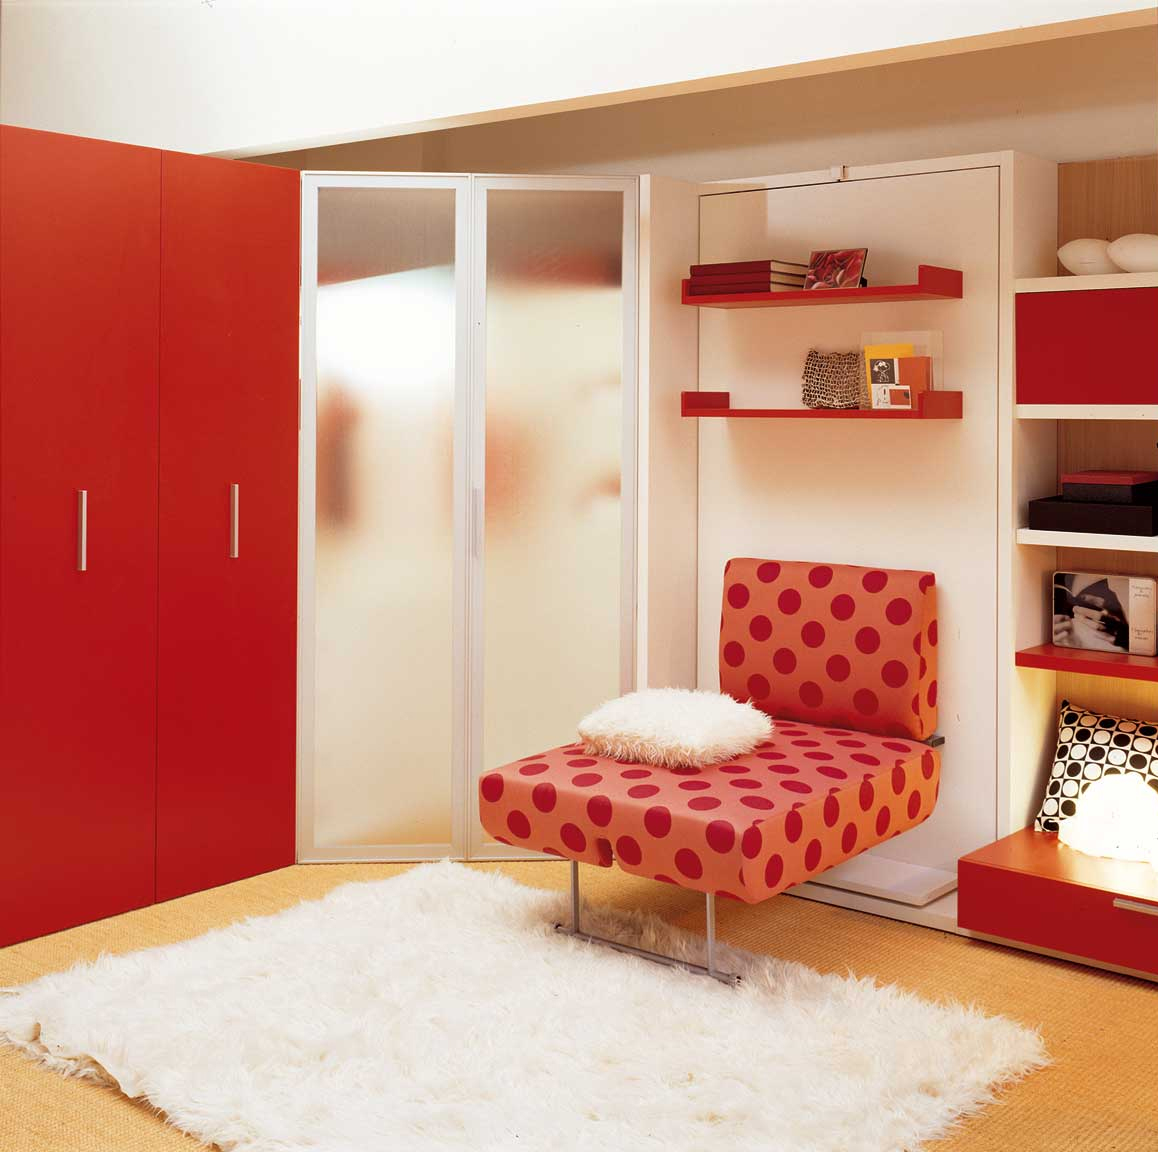 Lgs single swivel wall bed unit for Wall bed bangalore